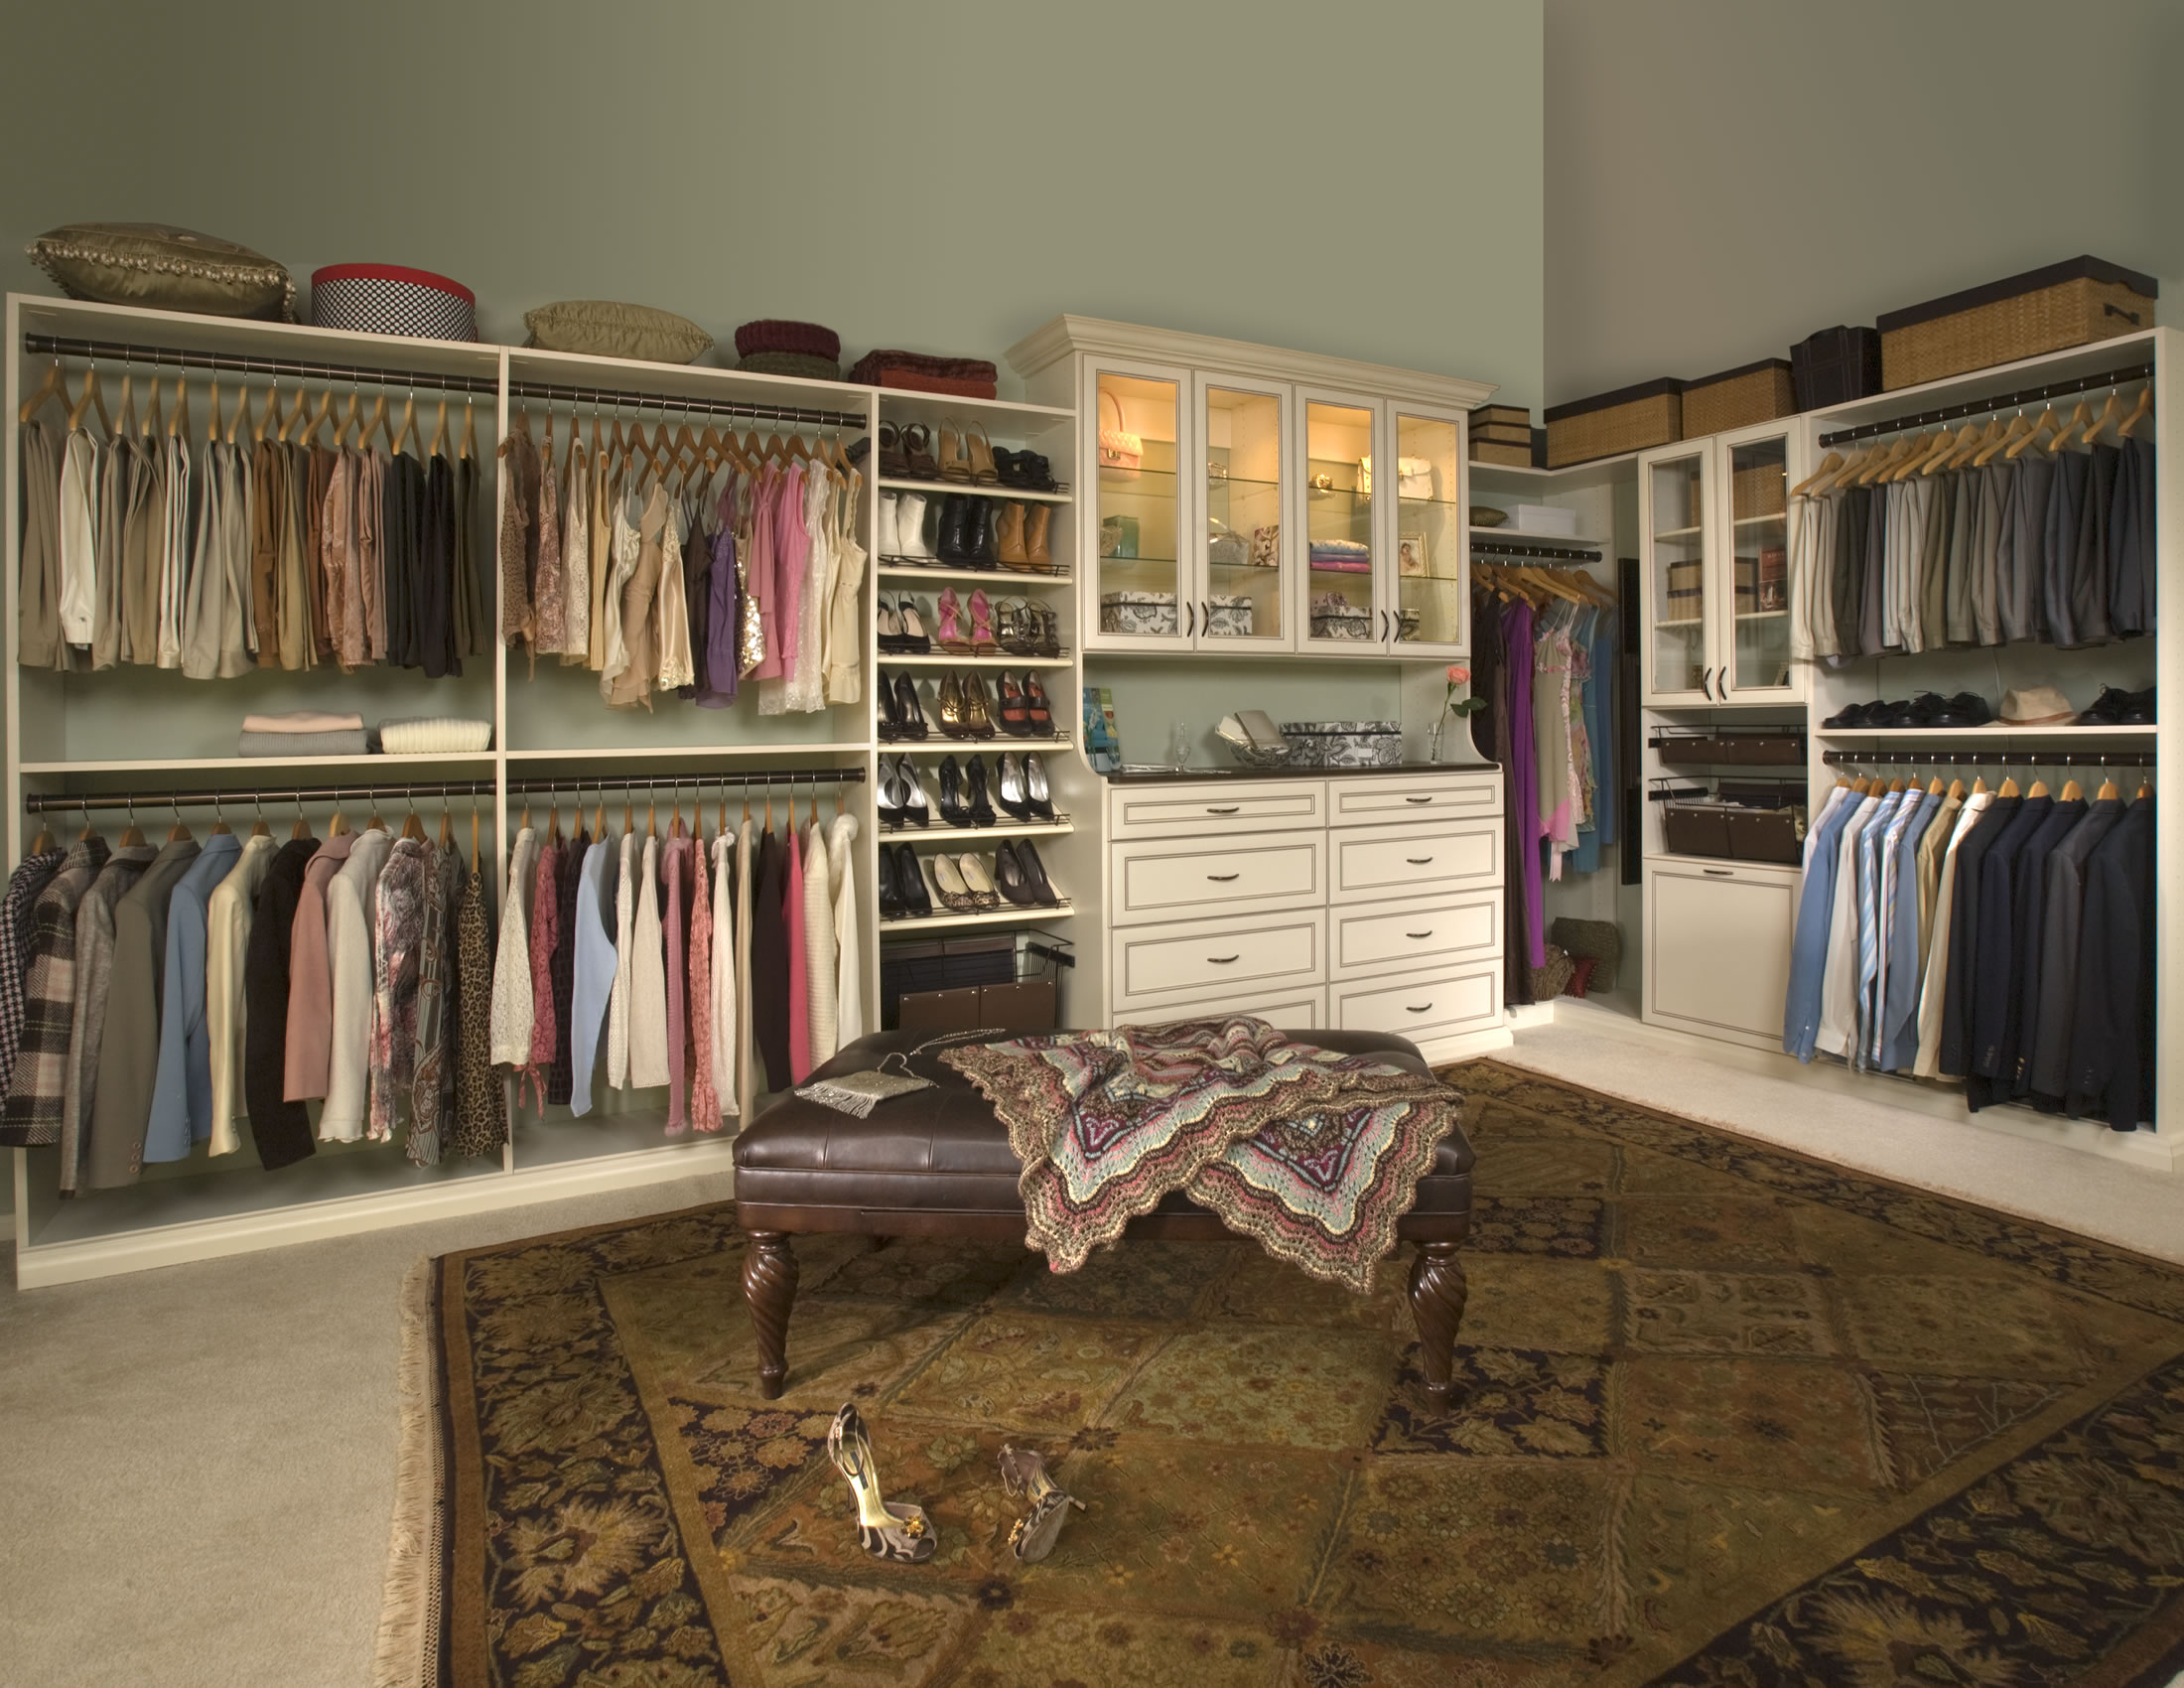 Natural Home Design BuildHow To Choose The Right Custom Closet Company. %